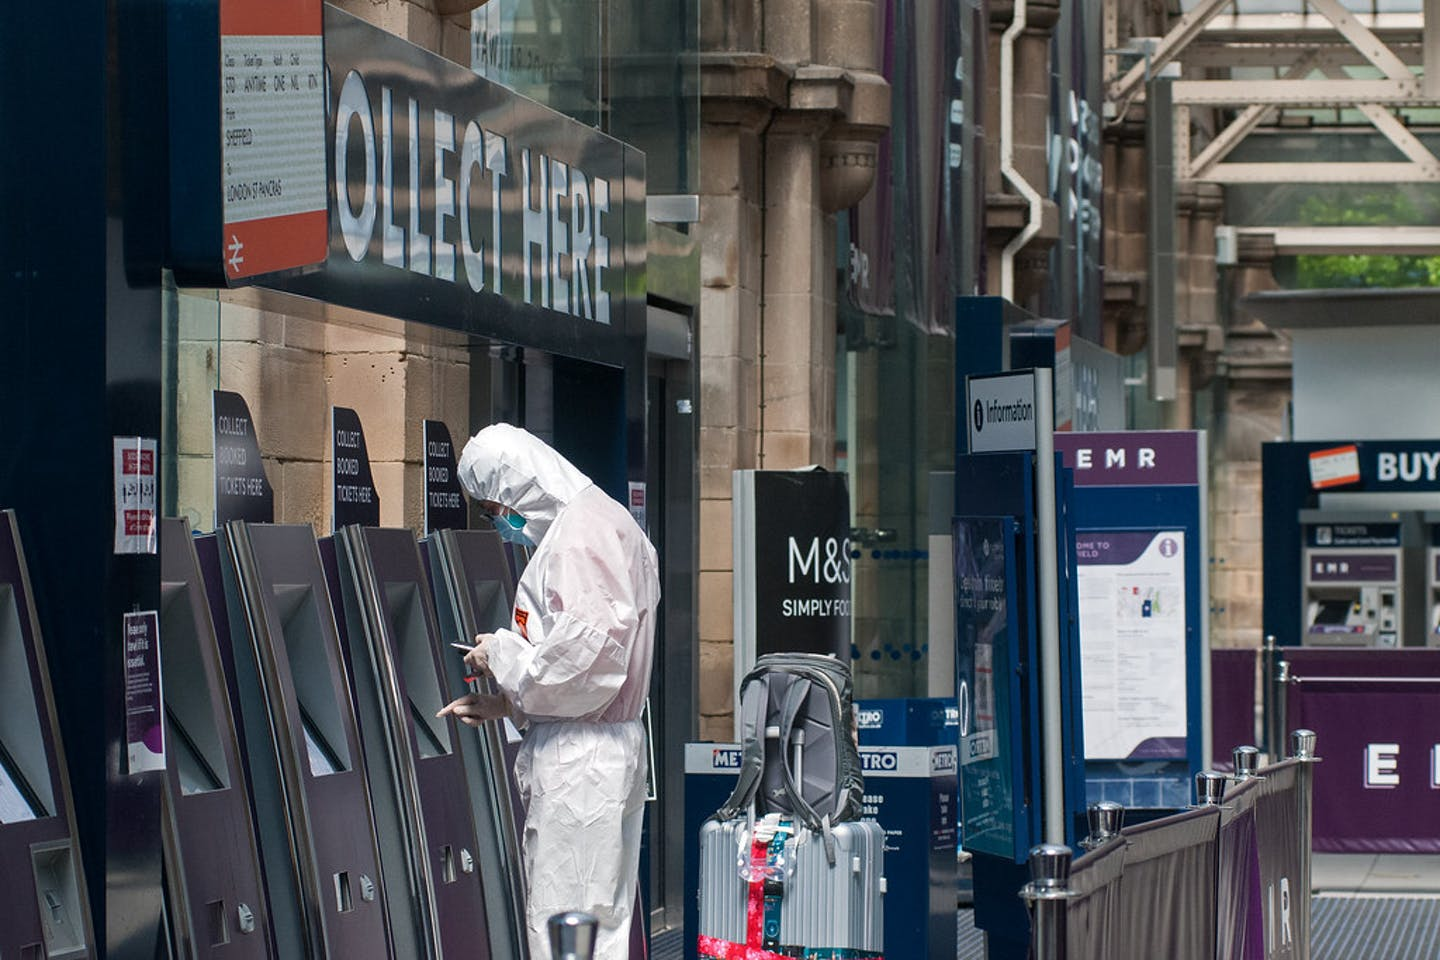 traveller in a protective suit  withdraws cash coronavirus